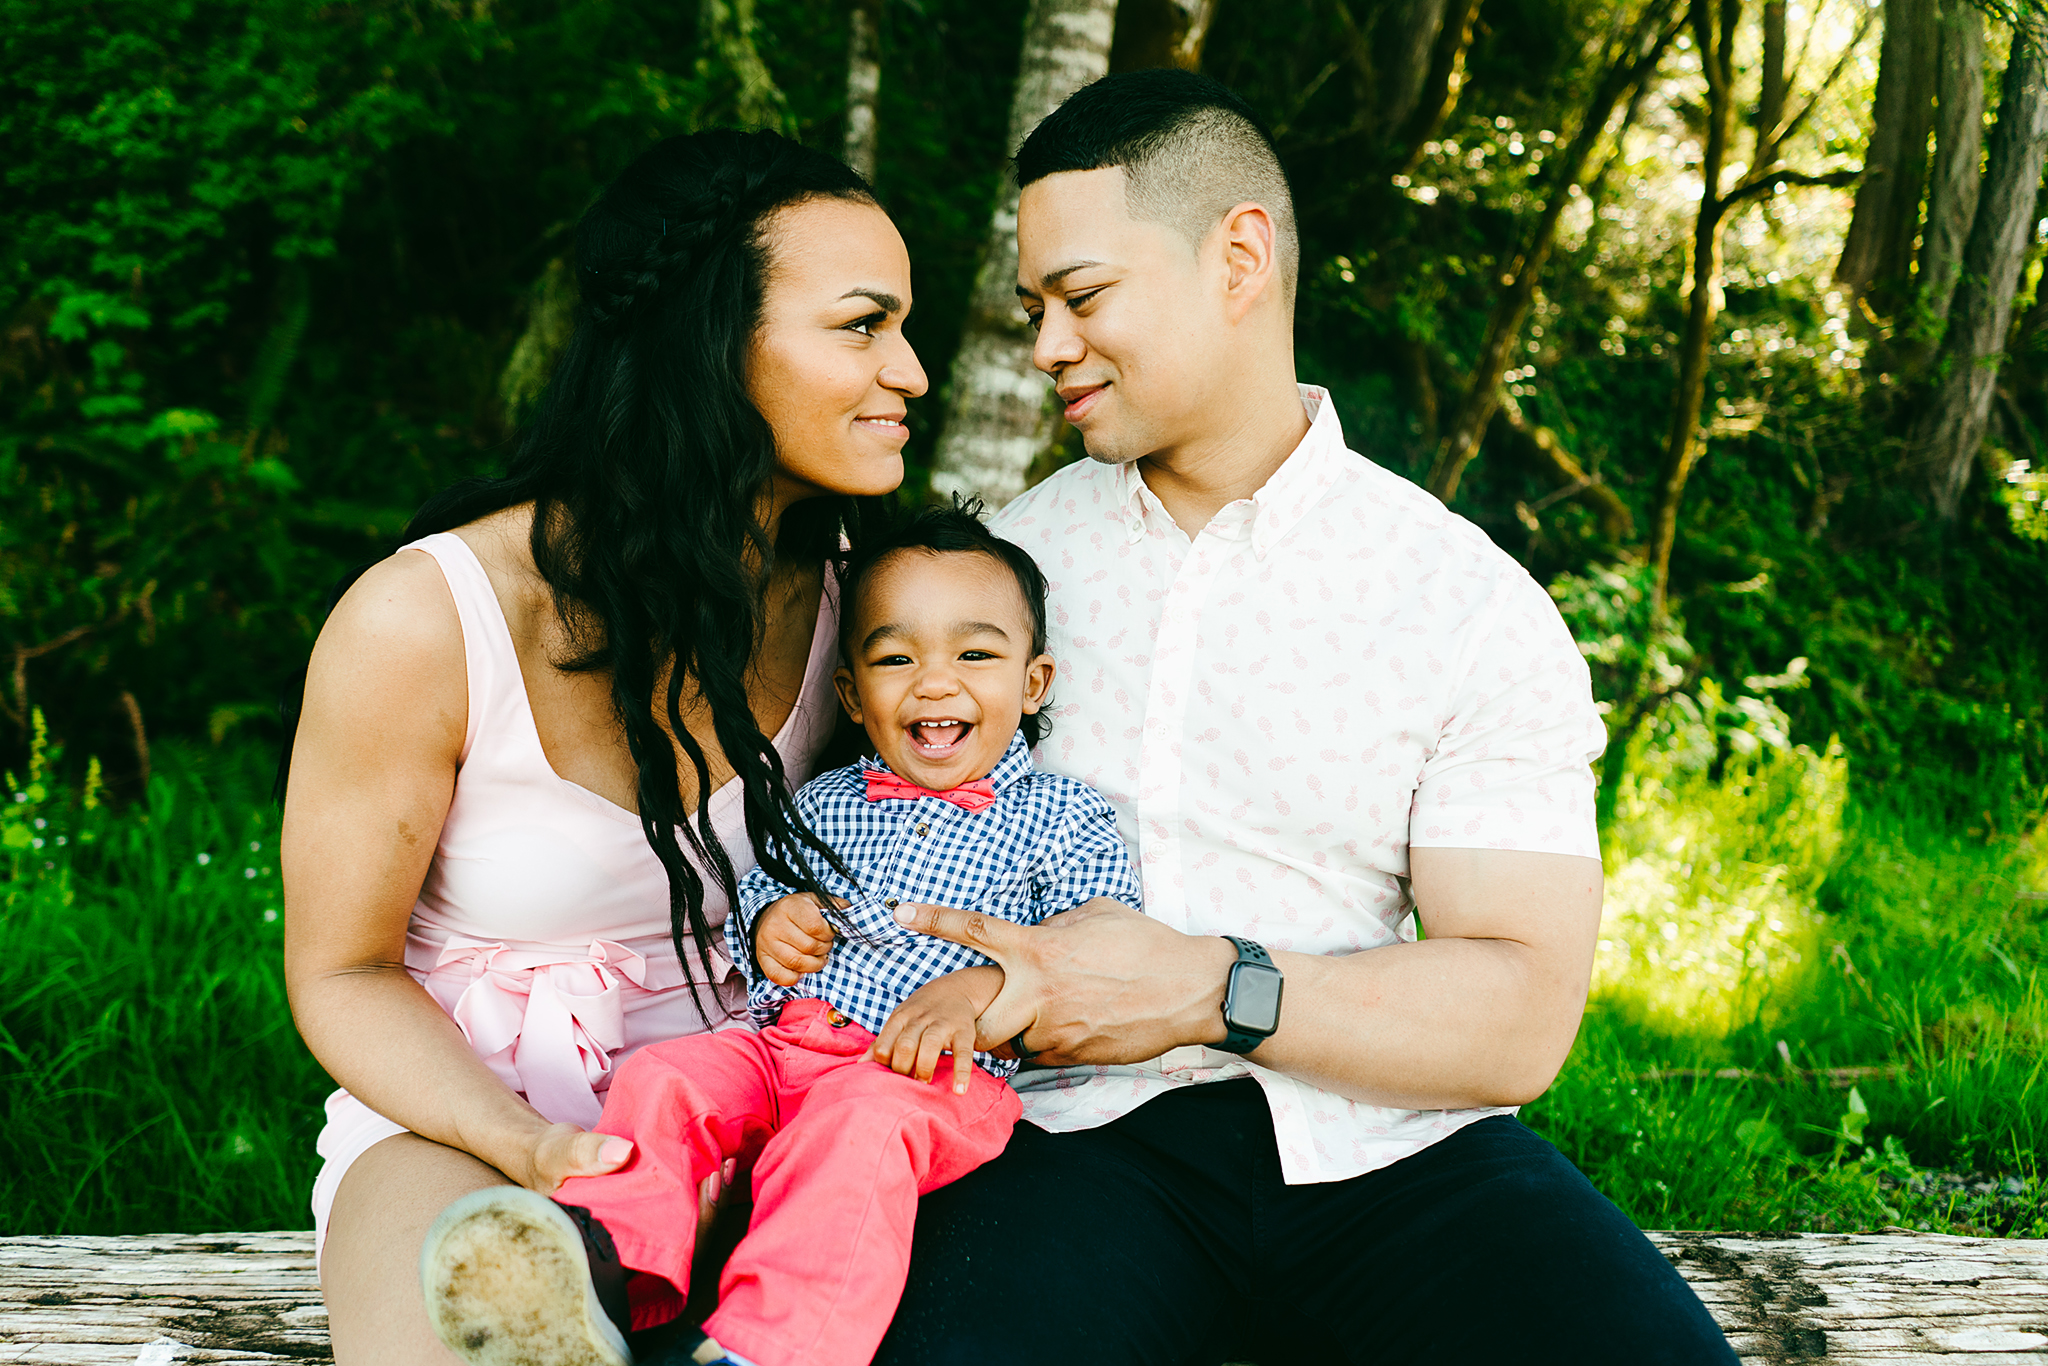 Tacoma Family Photography at Tolmie State Park